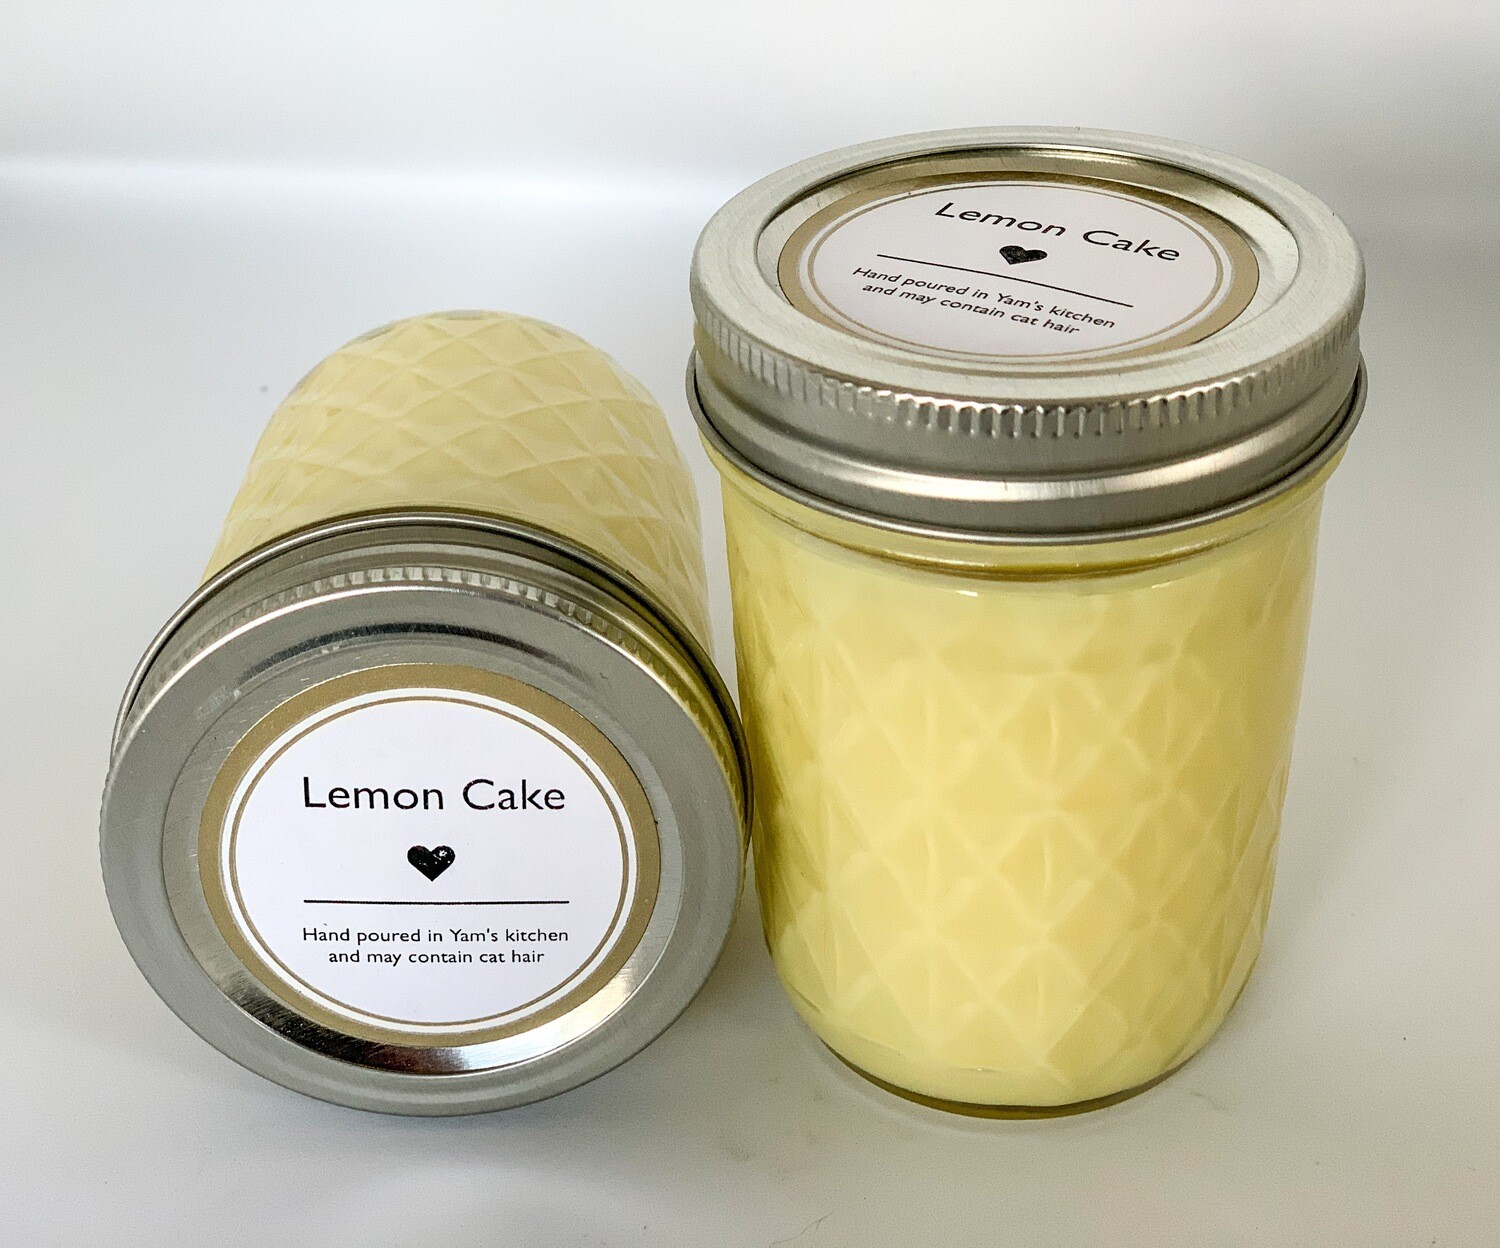 Lemon Cake 8oz Soy Candle